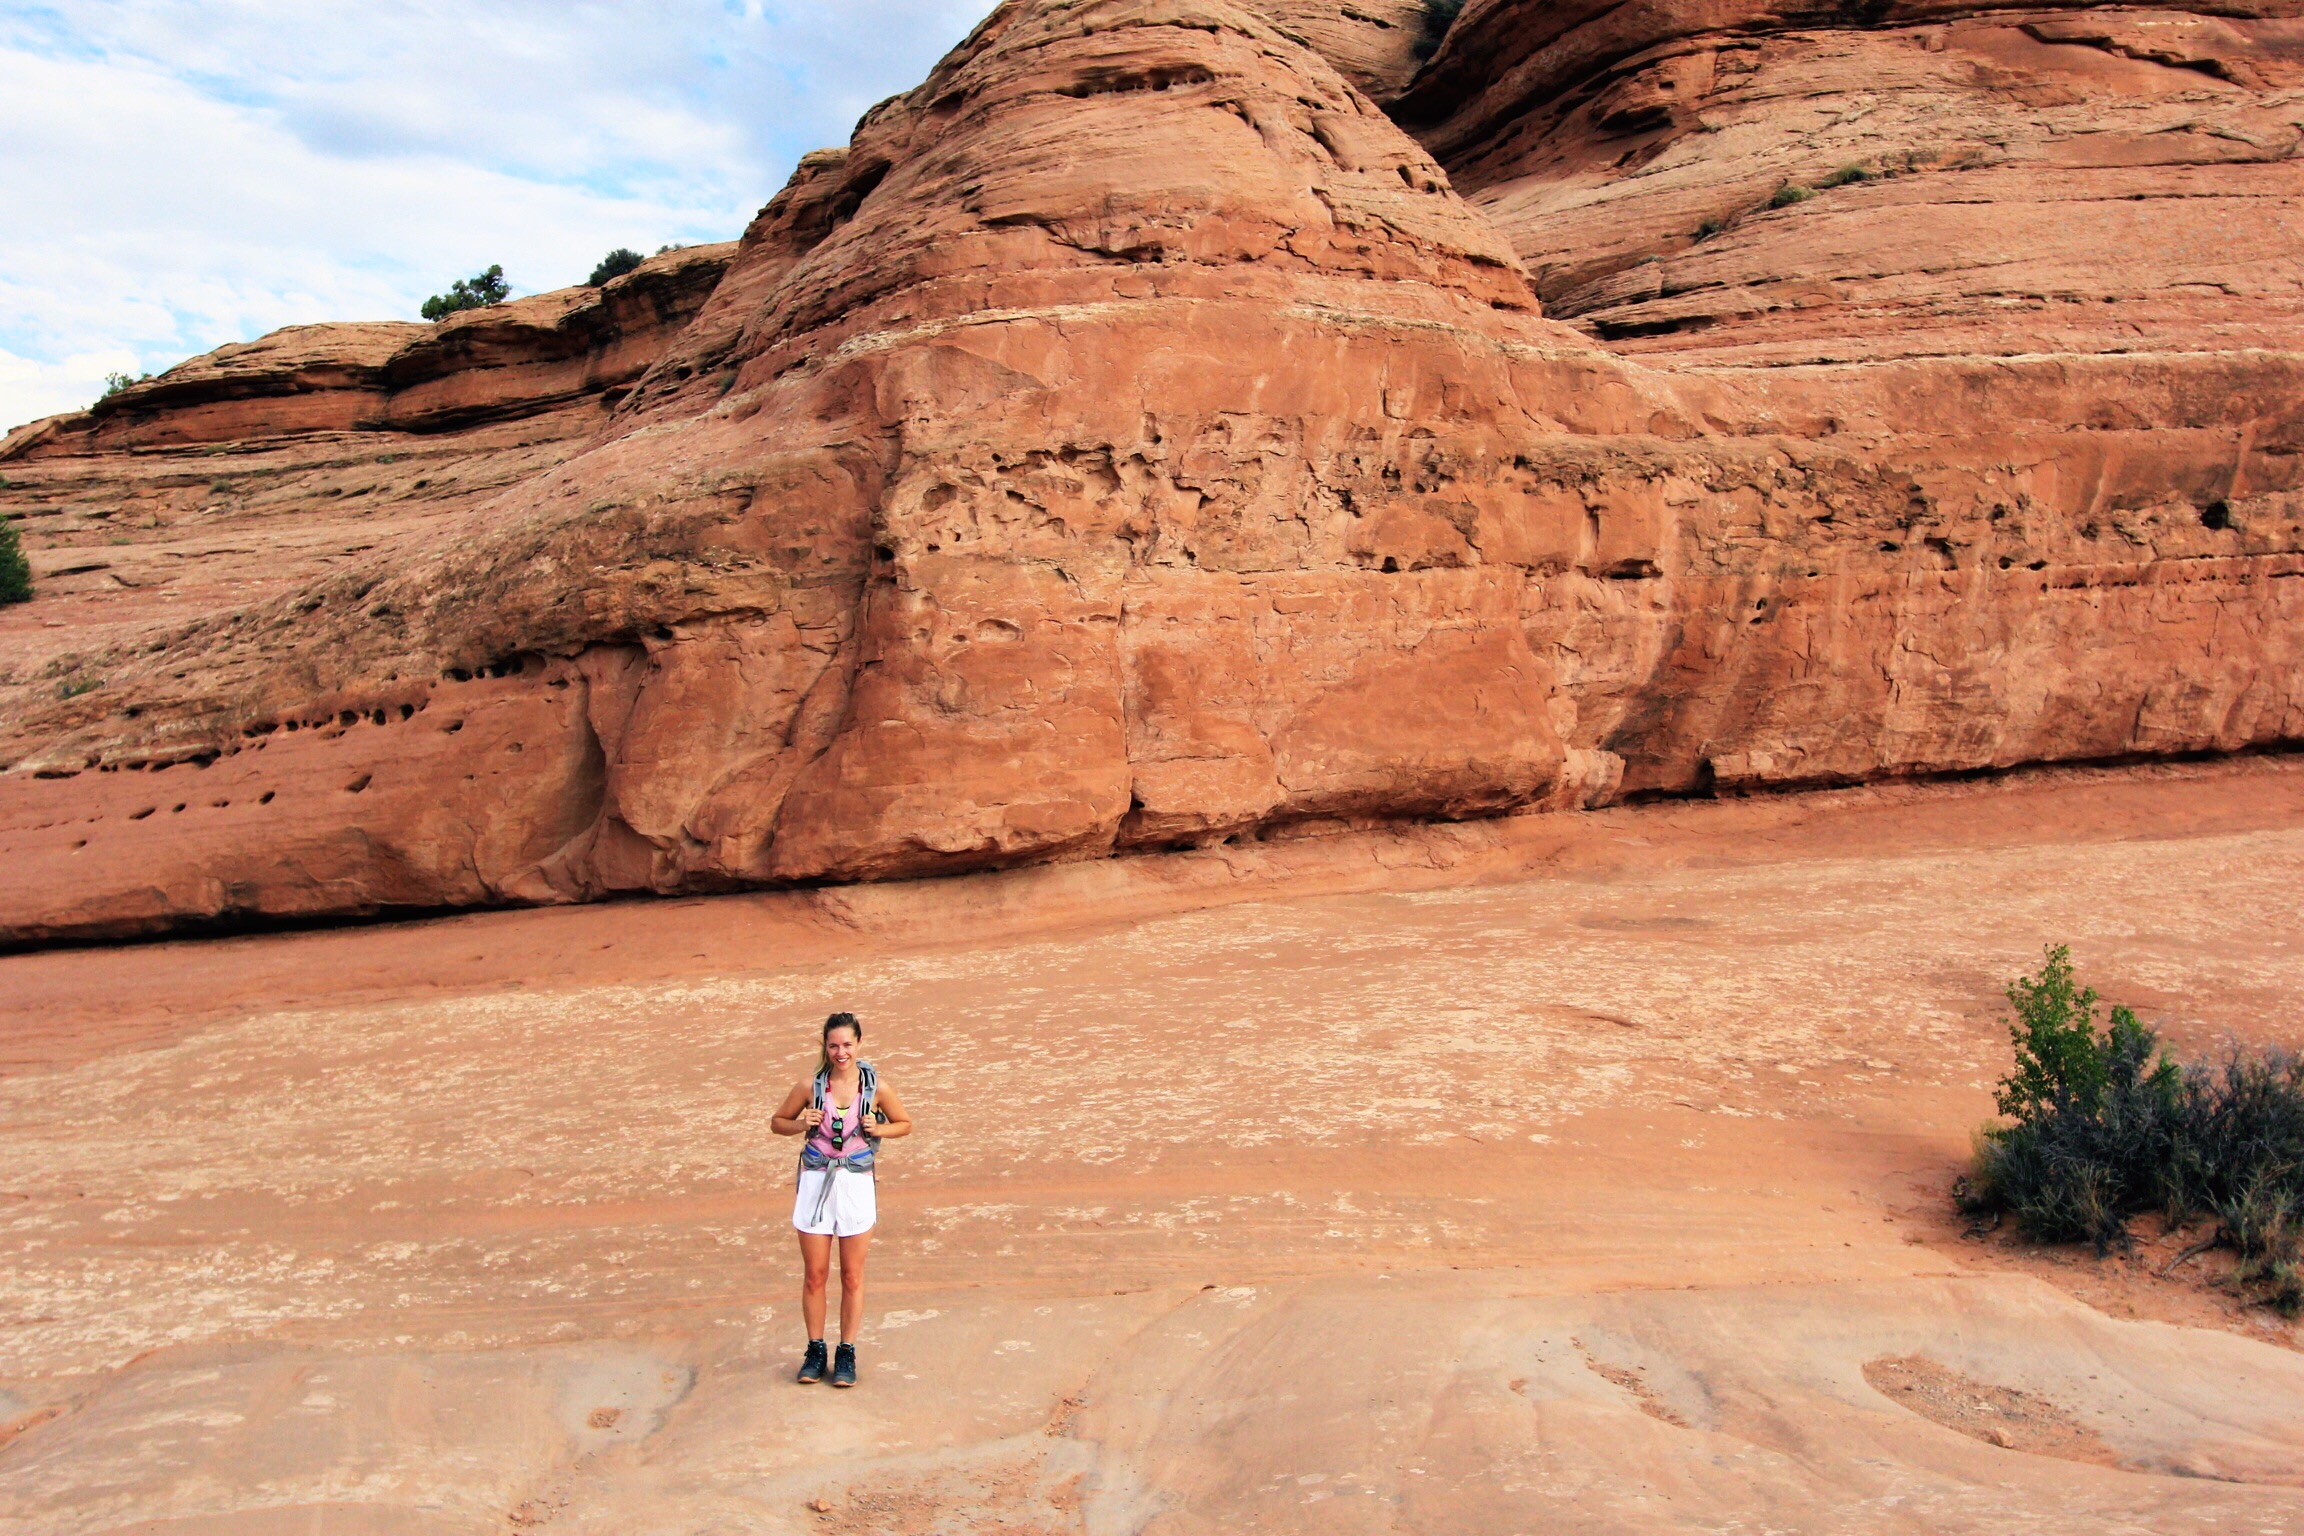 Hiking up to Delicate Arch - the last quarter mile was unlike anything I'd ever seen before